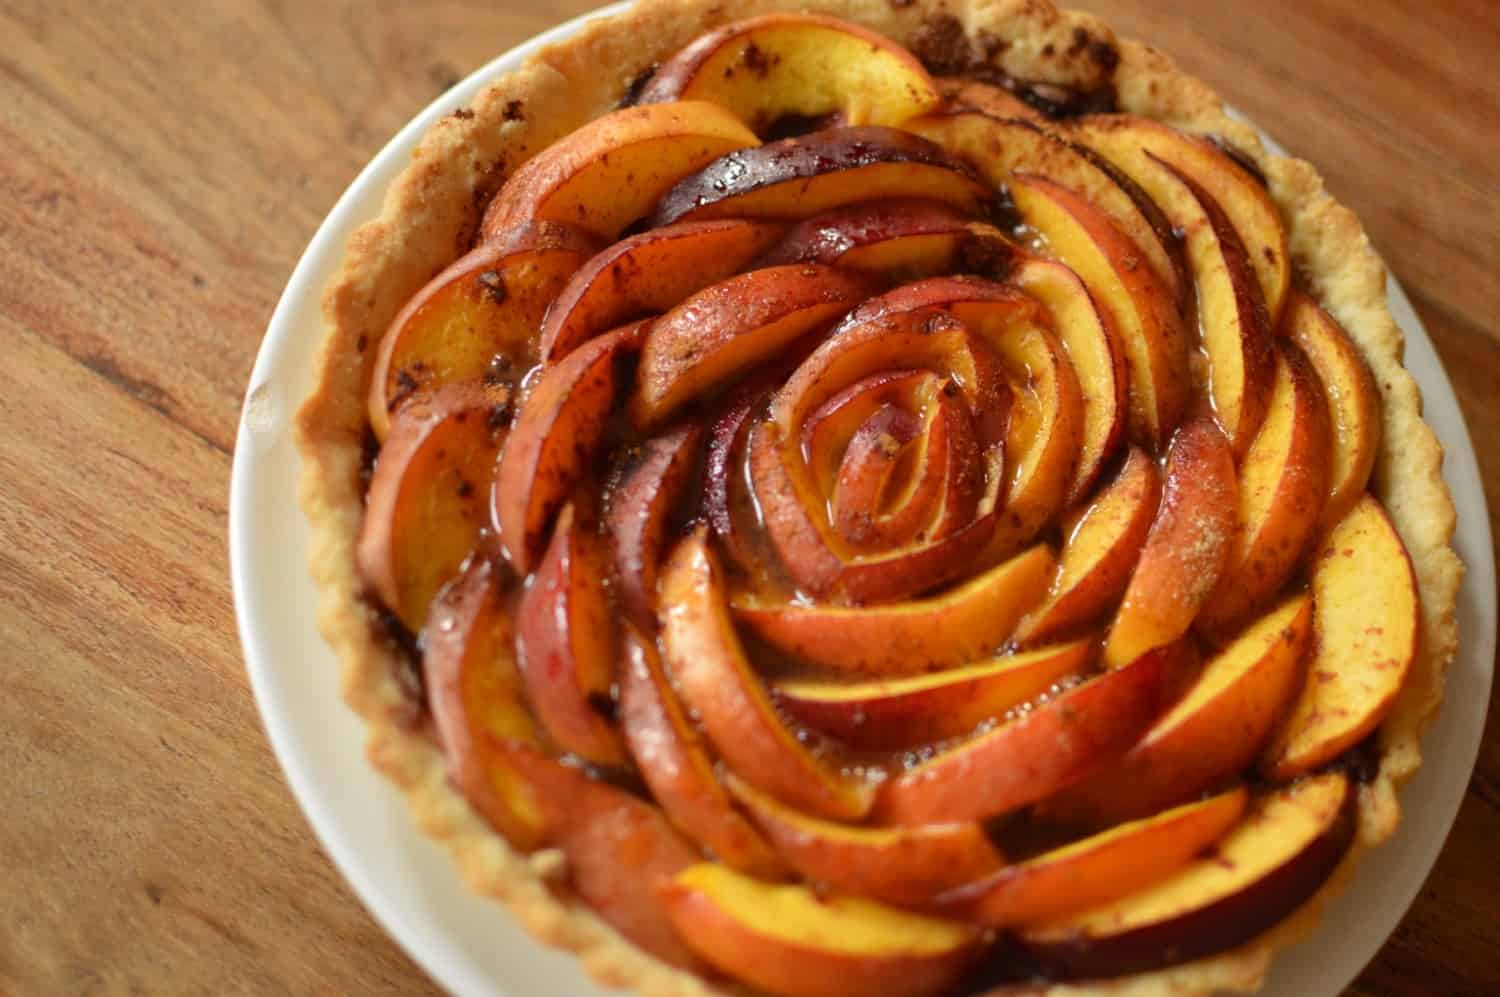 Peach Tart with Cinnamon & Nutella